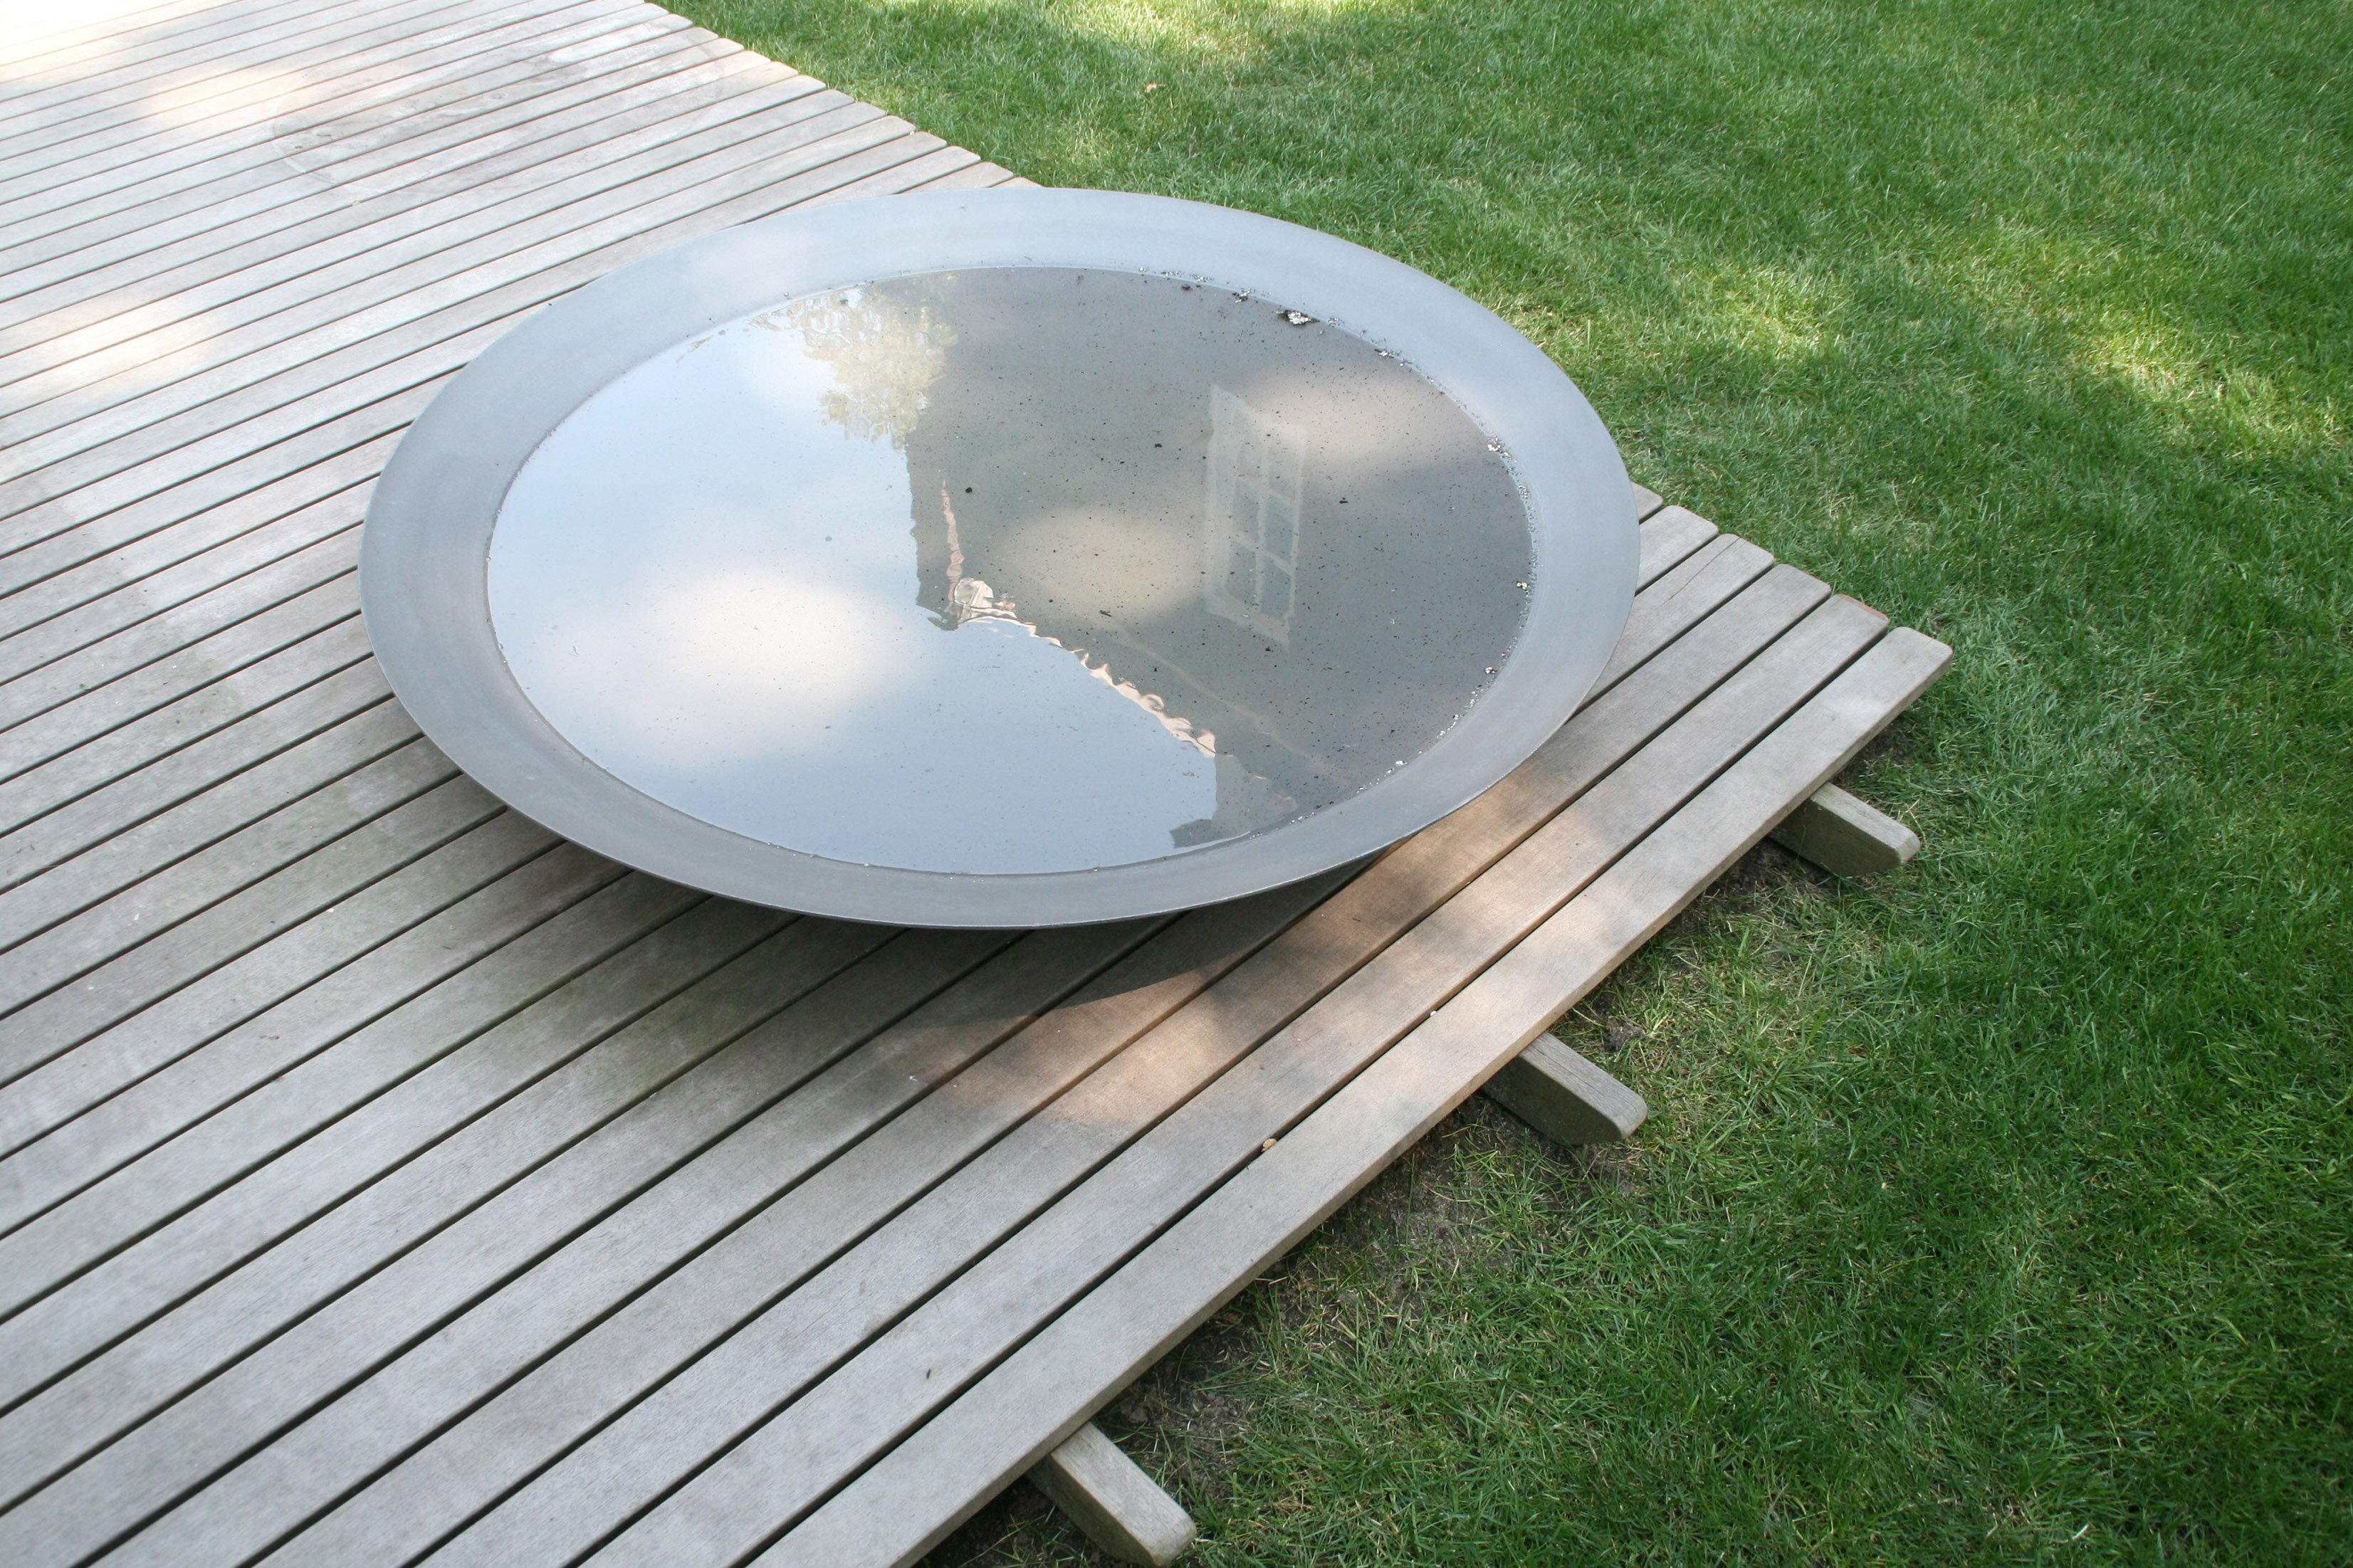 Water bowl reflecting as meditative element in garden room